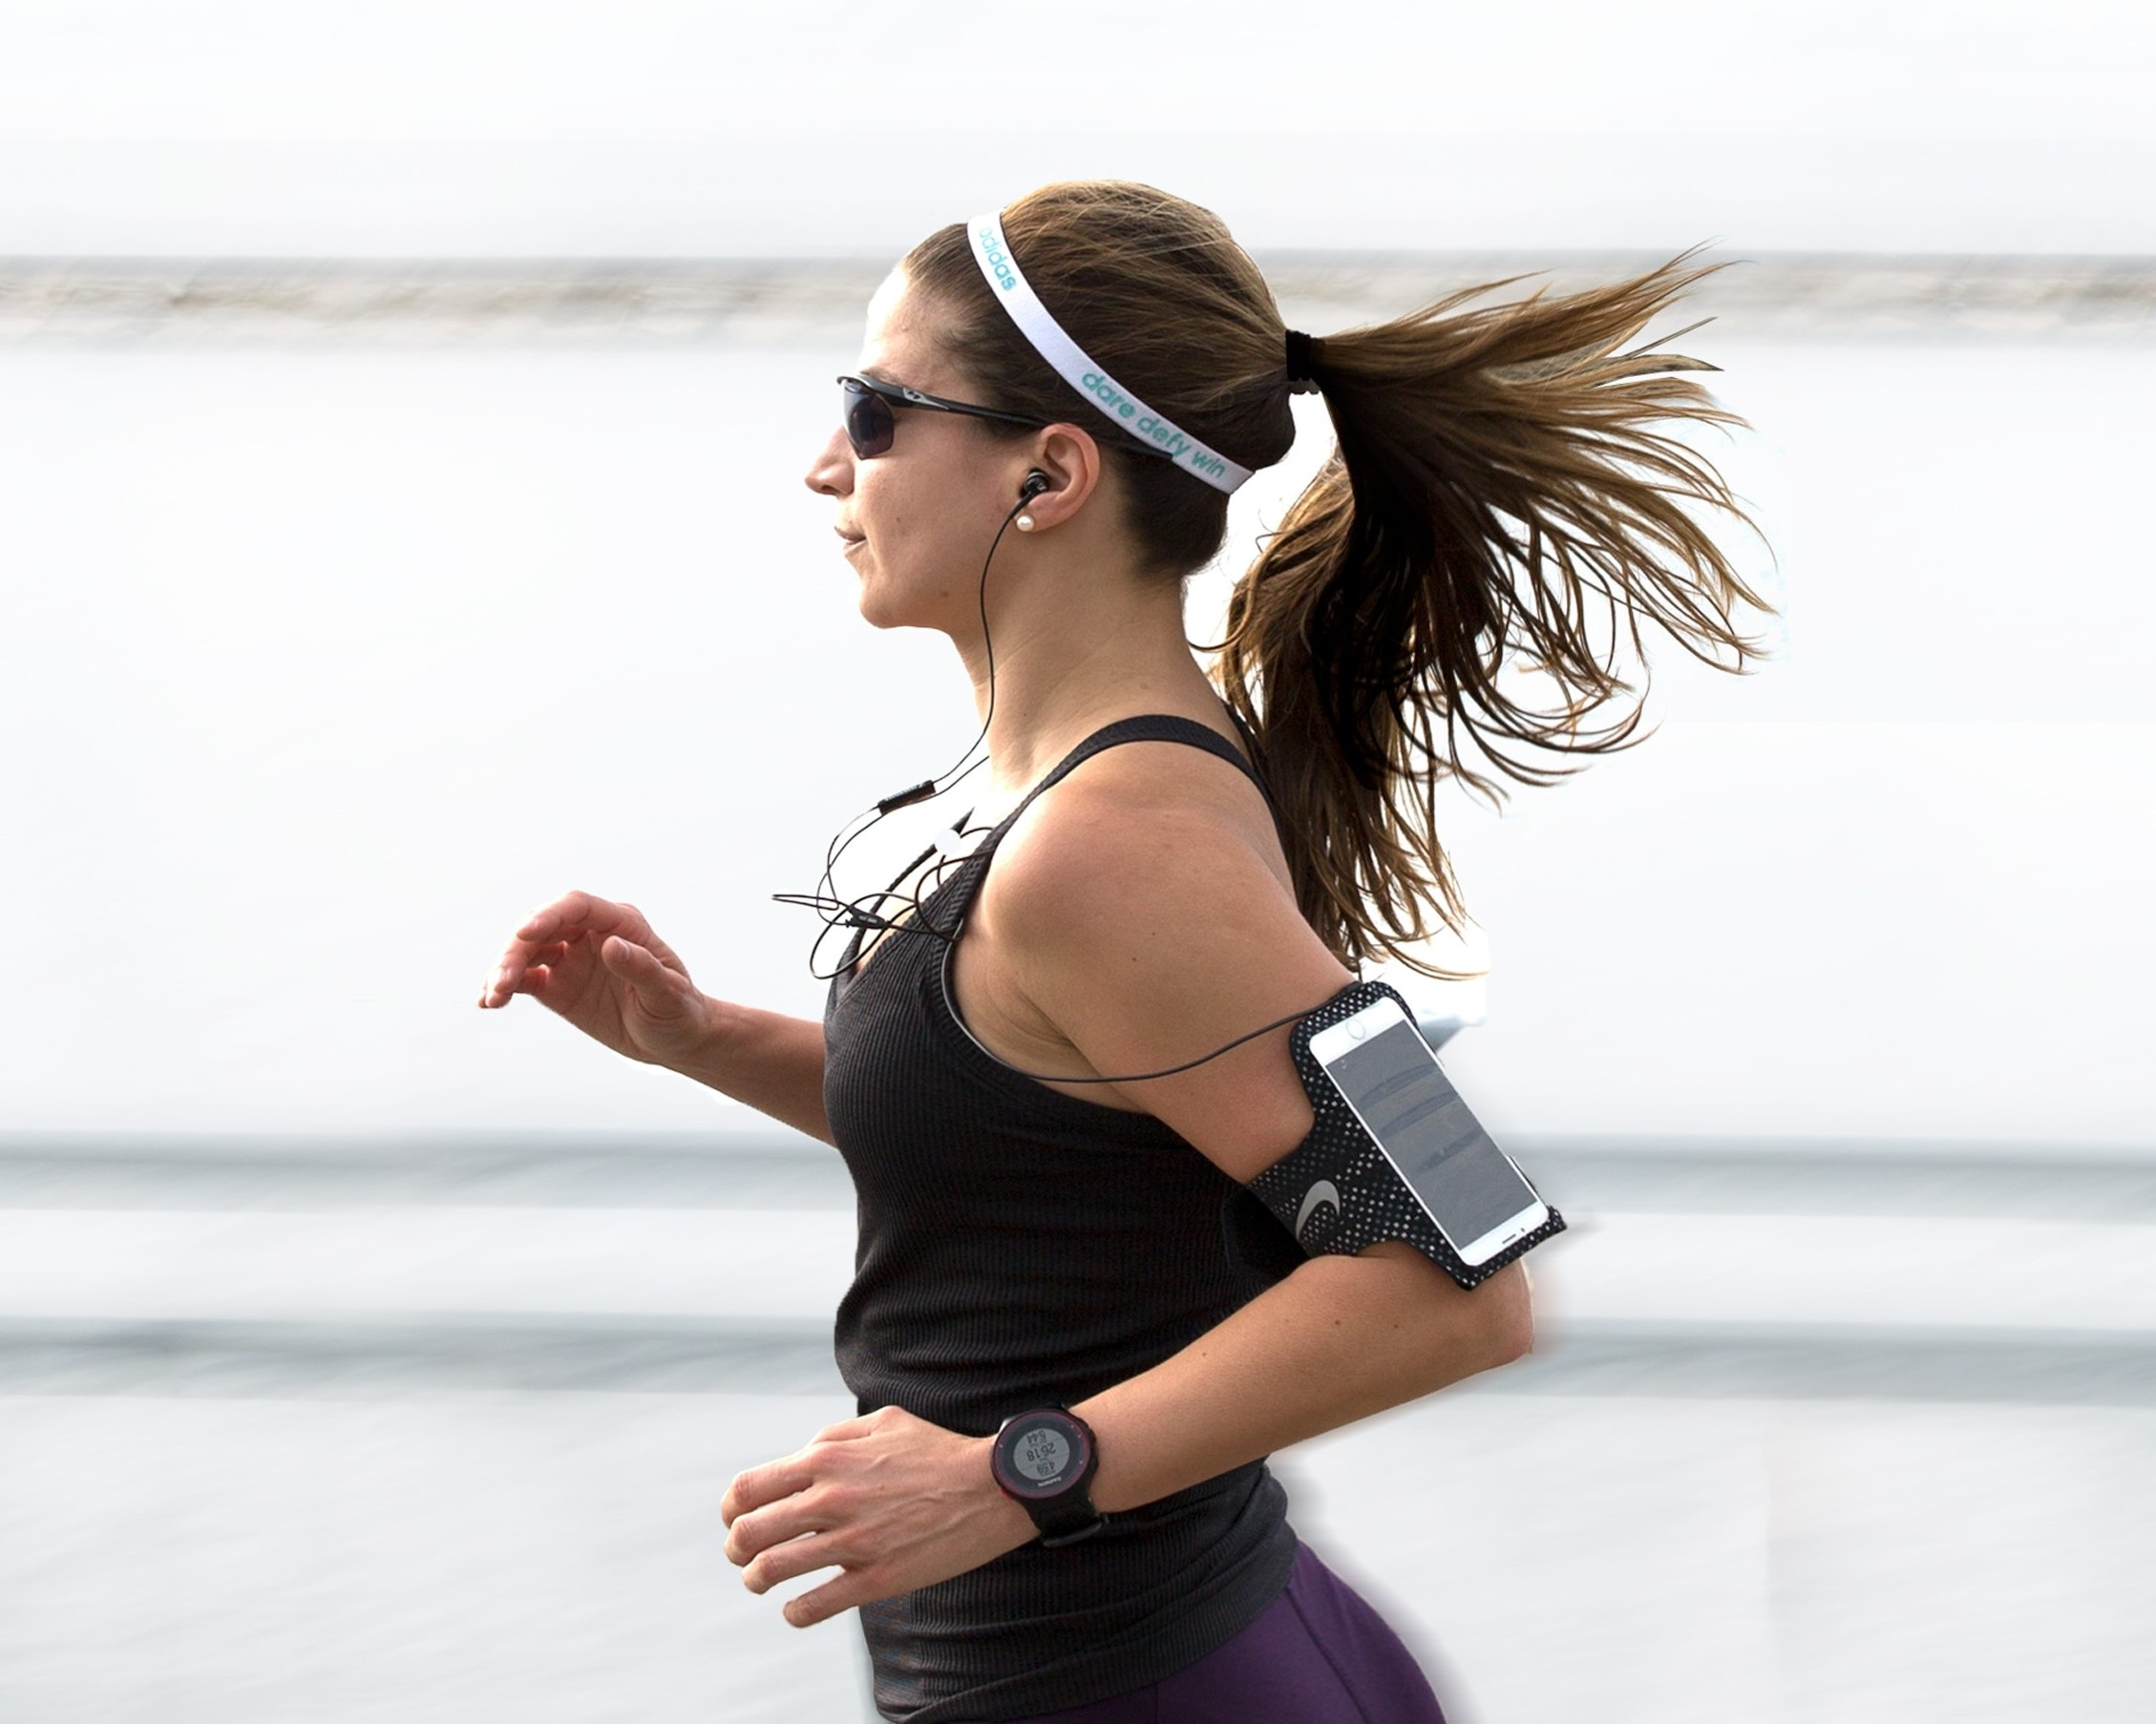 Photo by Filip Mroz on Unsplash - Writing and Jogging. This is  not  a photo of me (unlike me, she's rockin' the Spandex).